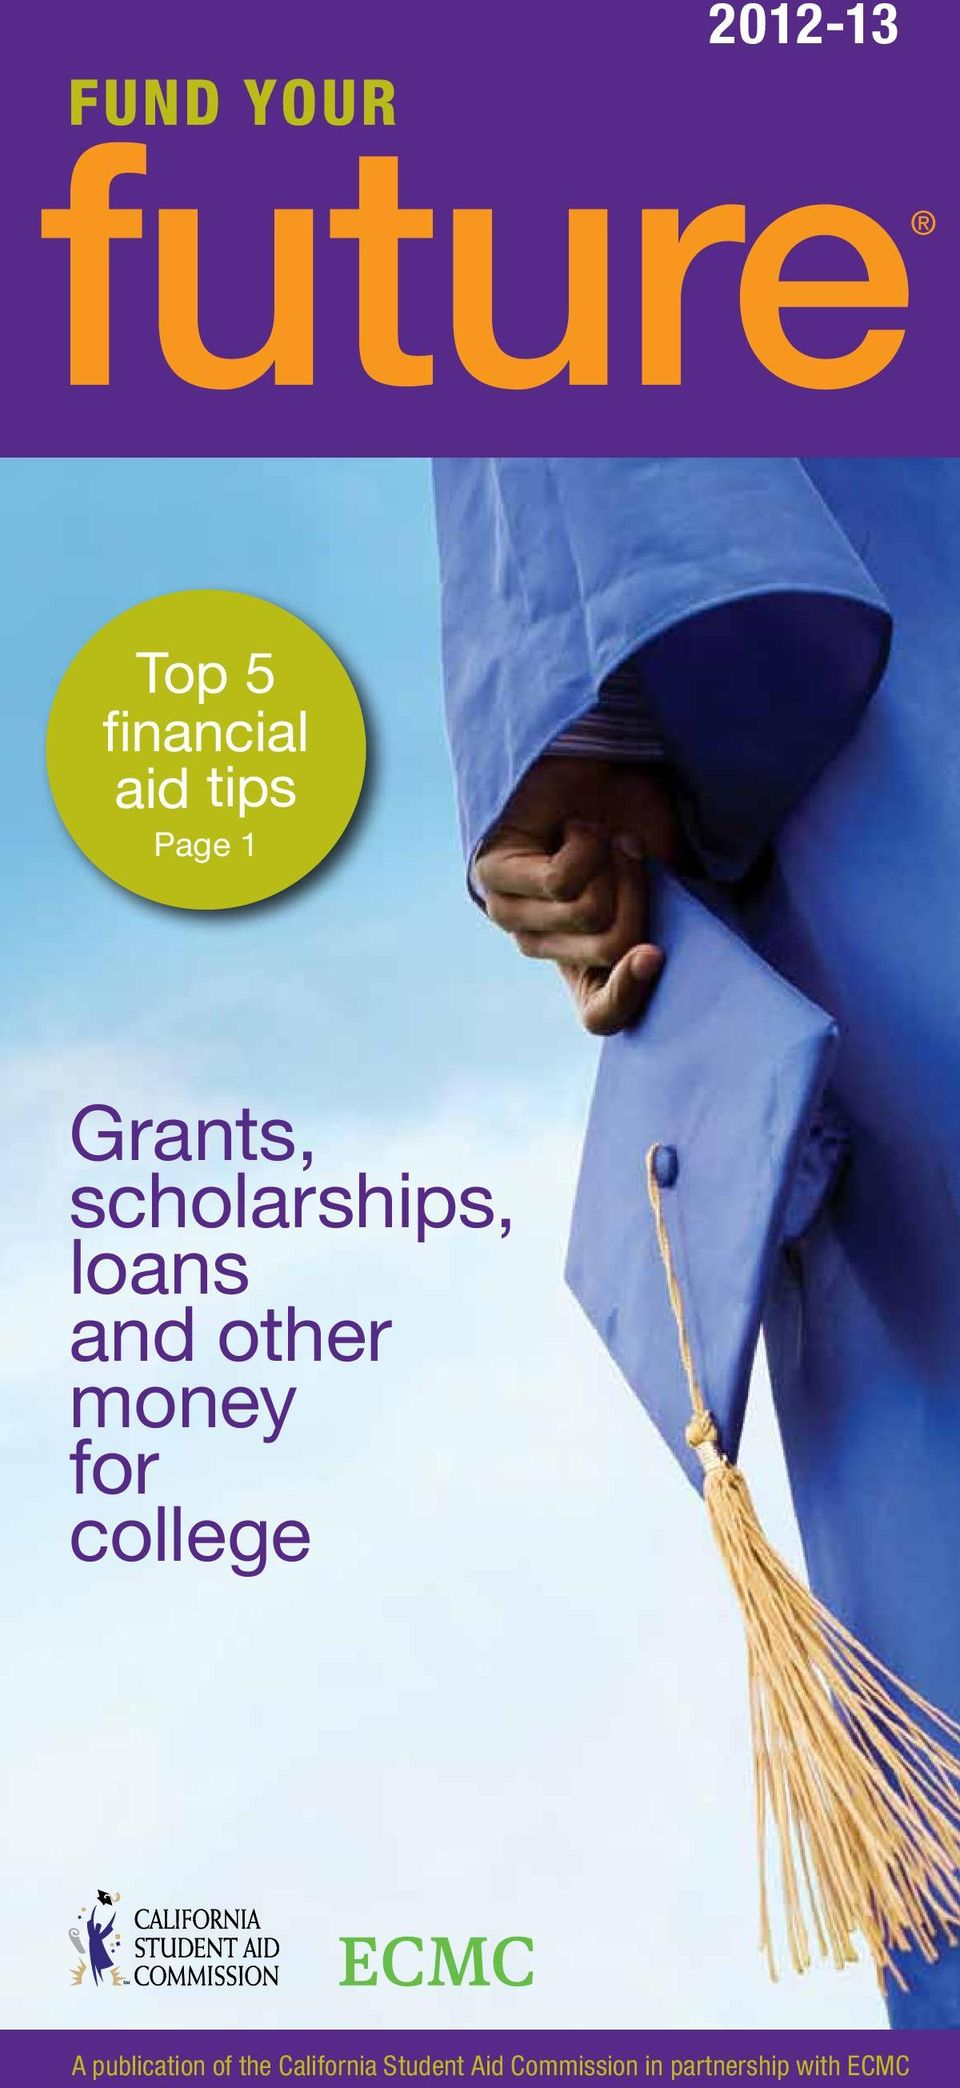 other money for college A publication of the